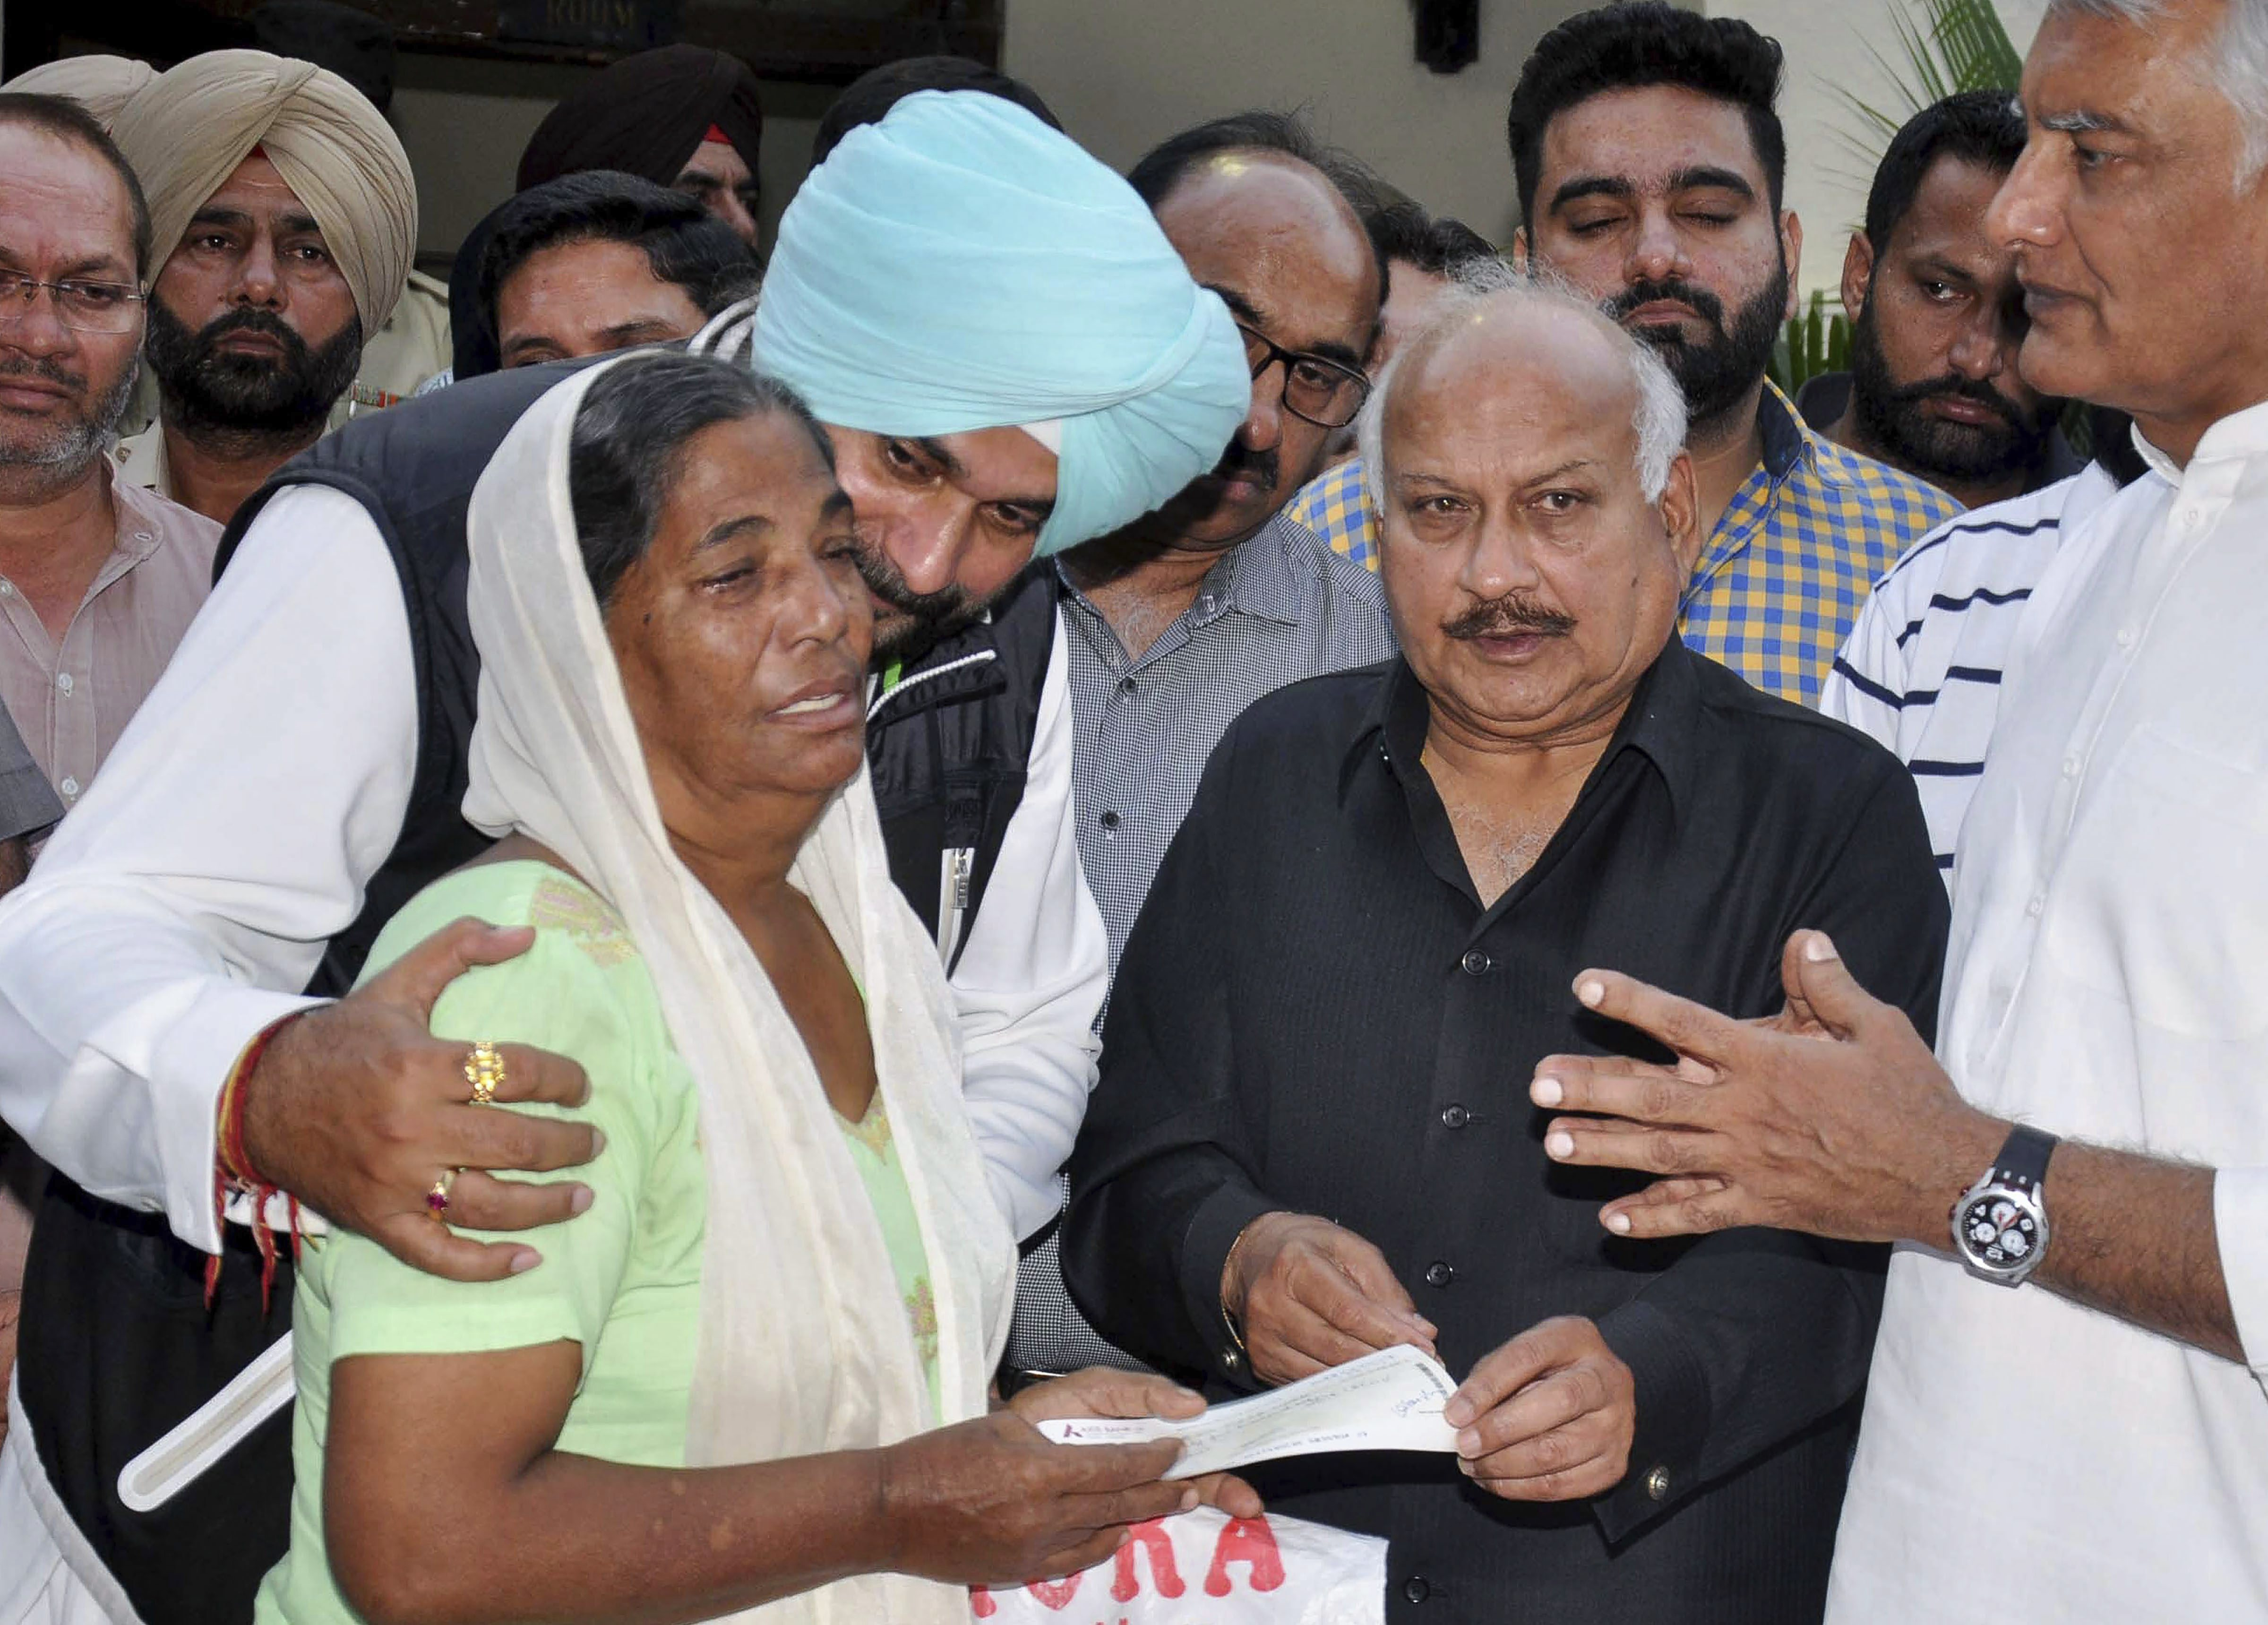 Punjab Cabinet ministers Navjot Singh Sidhu and Brahm Mohindra along with Punjab Pradesh Congress Committee (PPCC) President Sunil Jakhar gives away compensation cheques to the victims of Joda Phatak mishap, in Amritsar - PTI